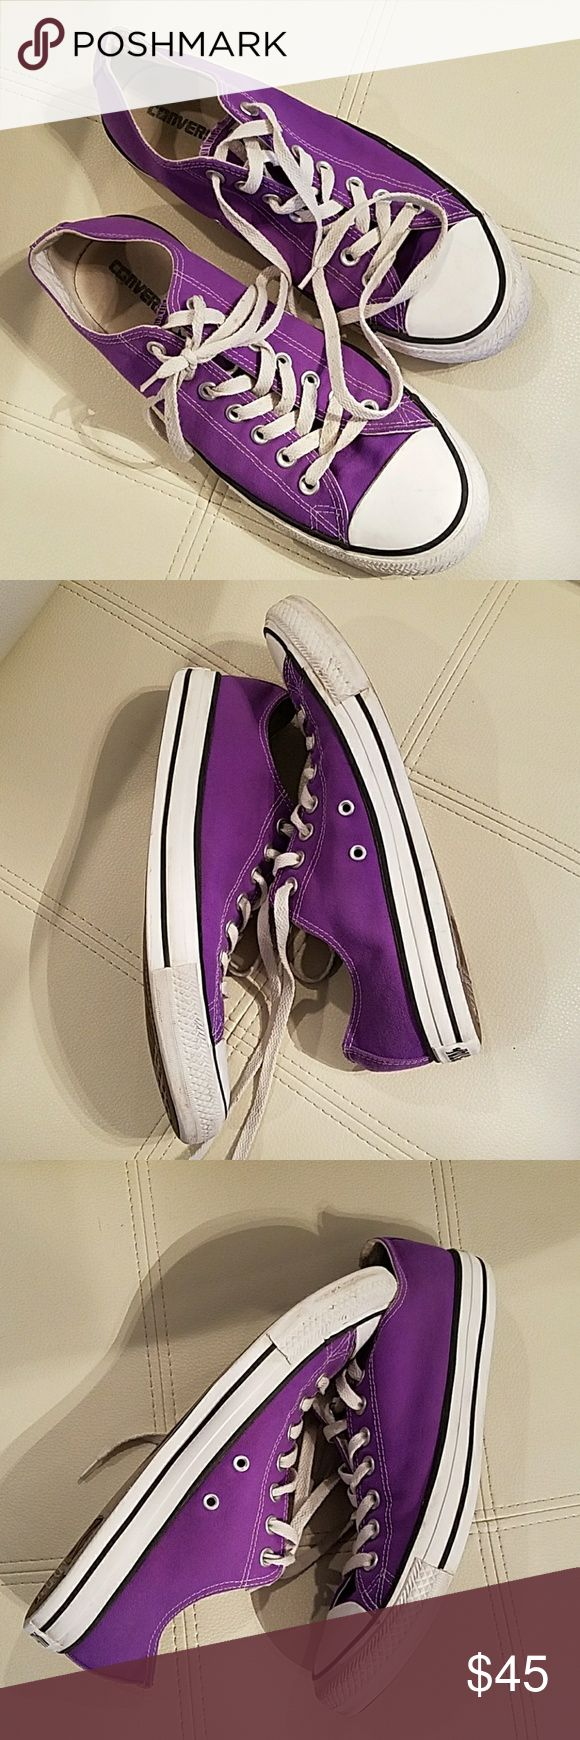 UNISEX ALL STAR CONVERSE Purple Converse,  No discoloration,  original shoe laces, unisex,  size 9 men's, size 11 women's Converse Shoes Athletic Shoes